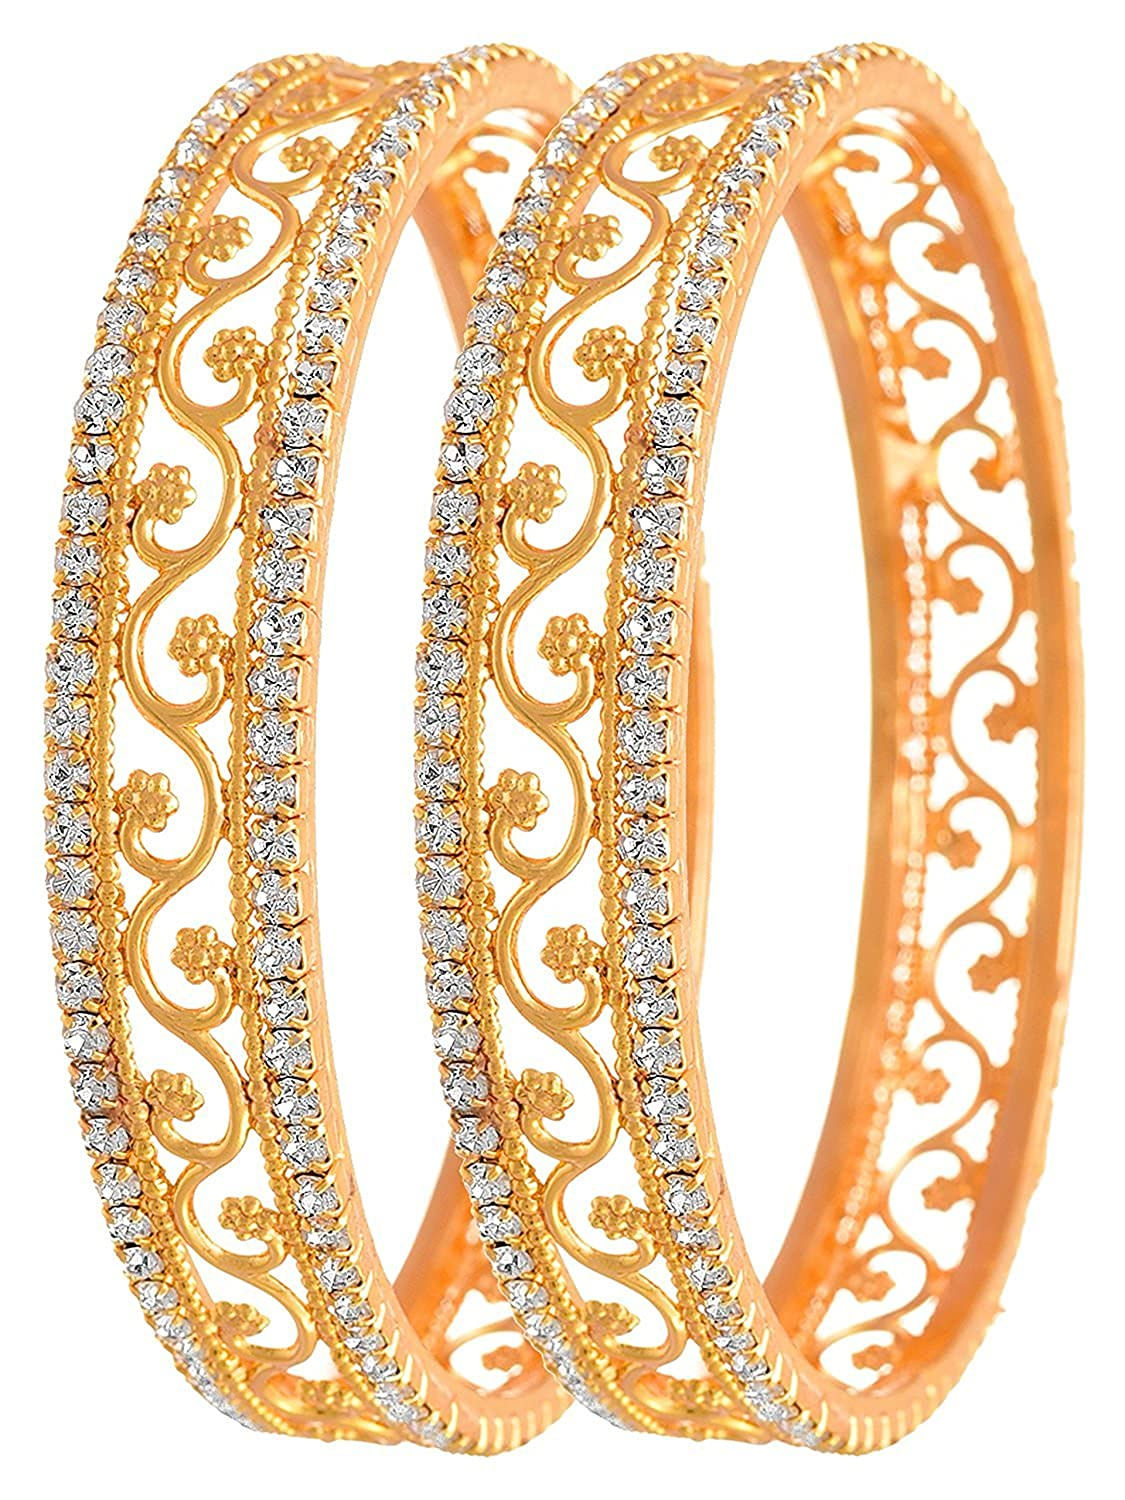 Bridal & Wedding Party Jewelry Trustful Indian Bollywood Traditional Goldplated Kada Bracelets Bangle Jewellery 2*6 With A Long Standing Reputation